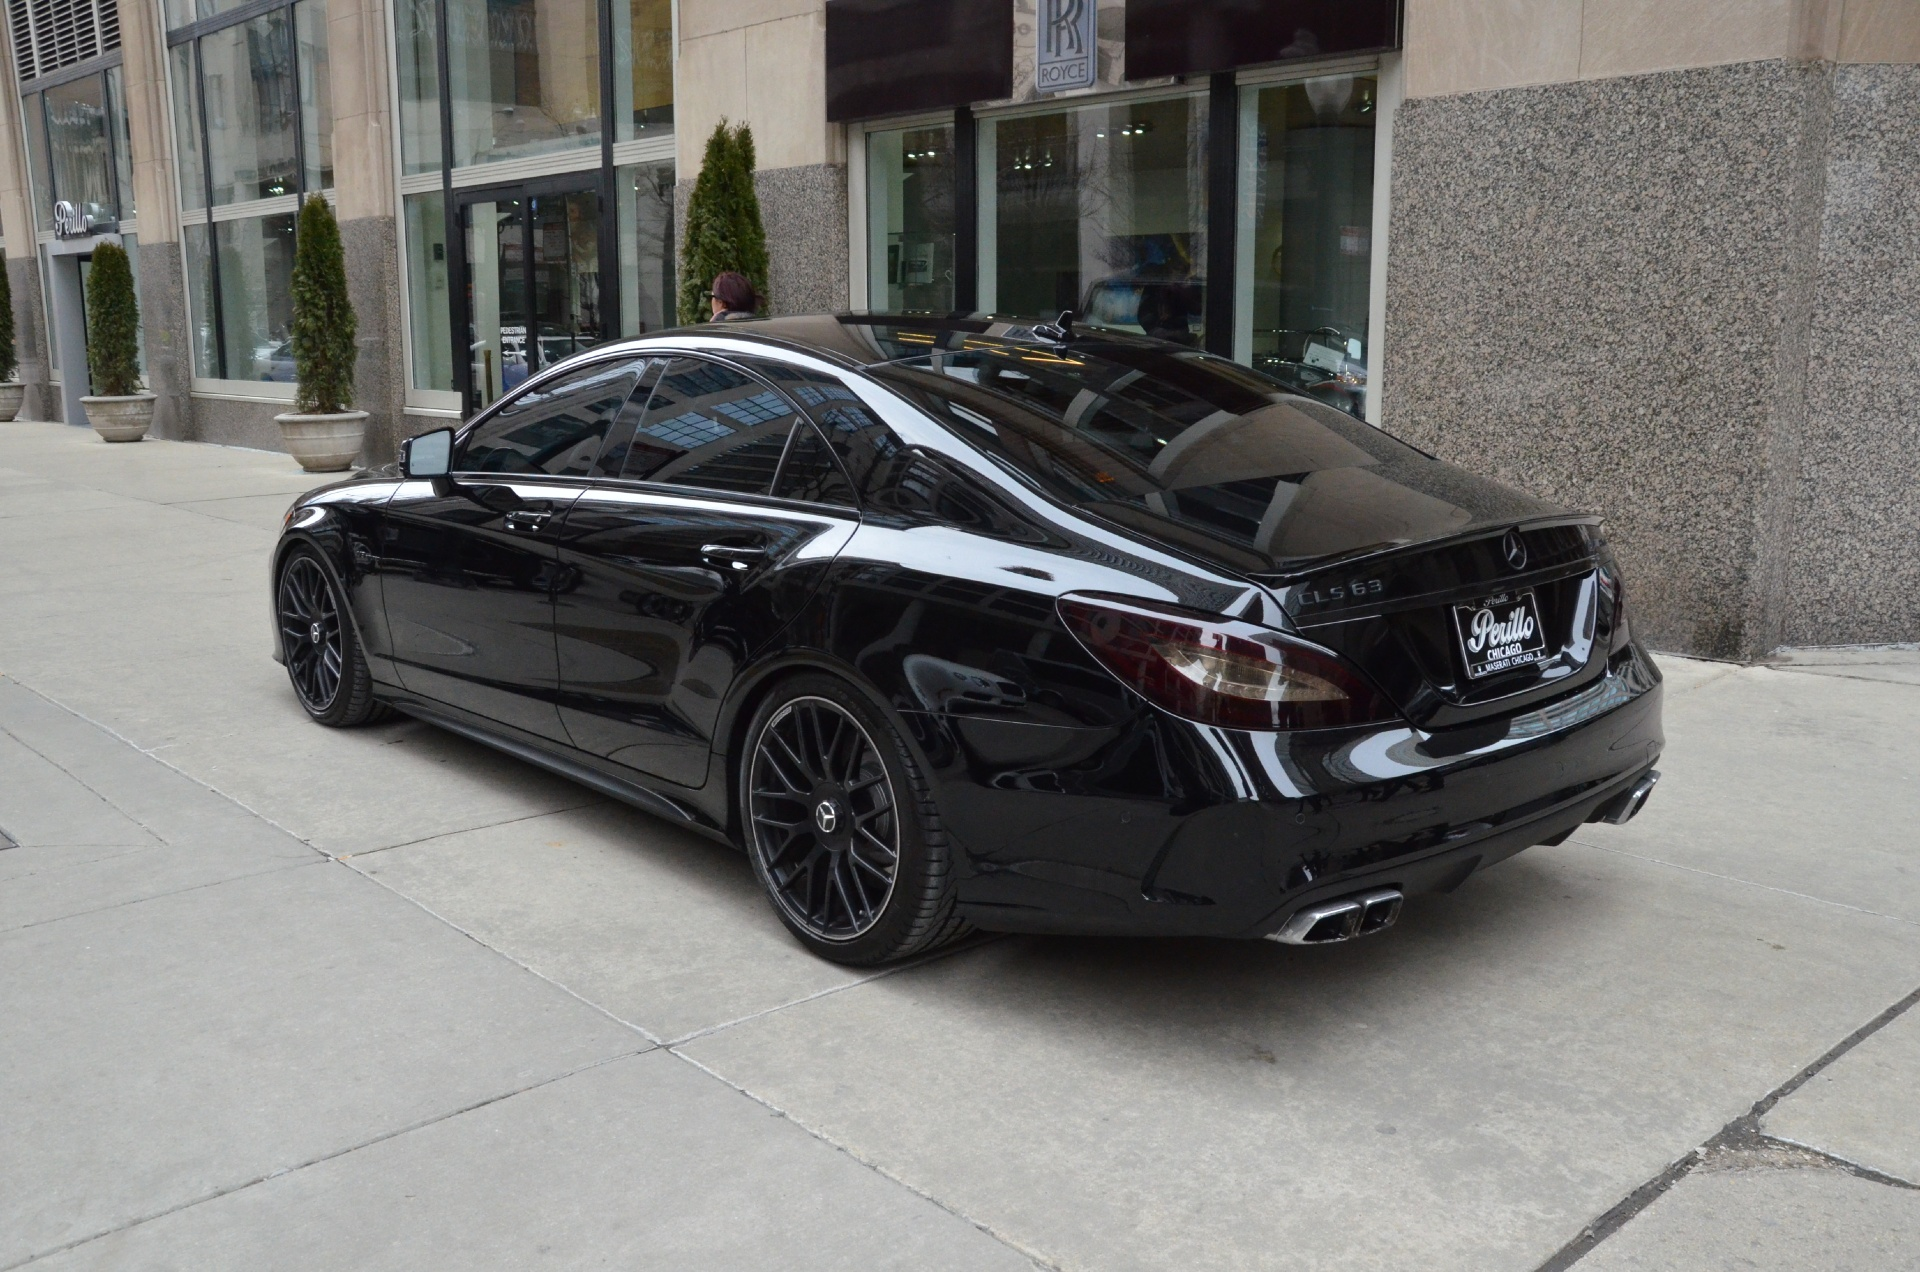 2015 mercedes benz cls class cls63 amg s model stock. Black Bedroom Furniture Sets. Home Design Ideas